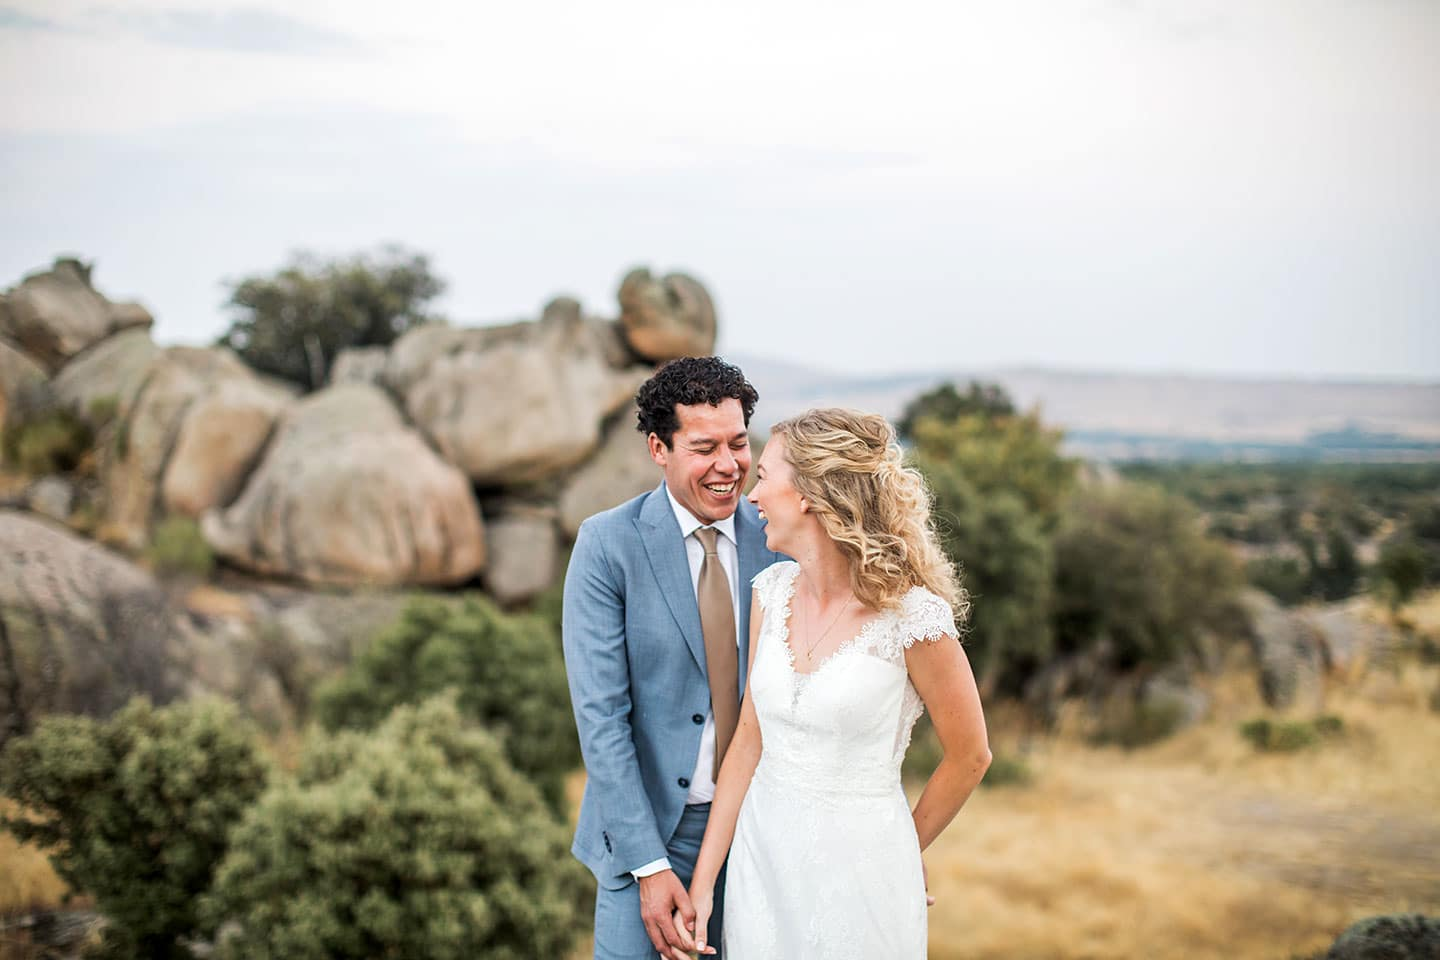 Wedding In Spanish.Spain Destination Wedding Photographer Dario Endara Photography